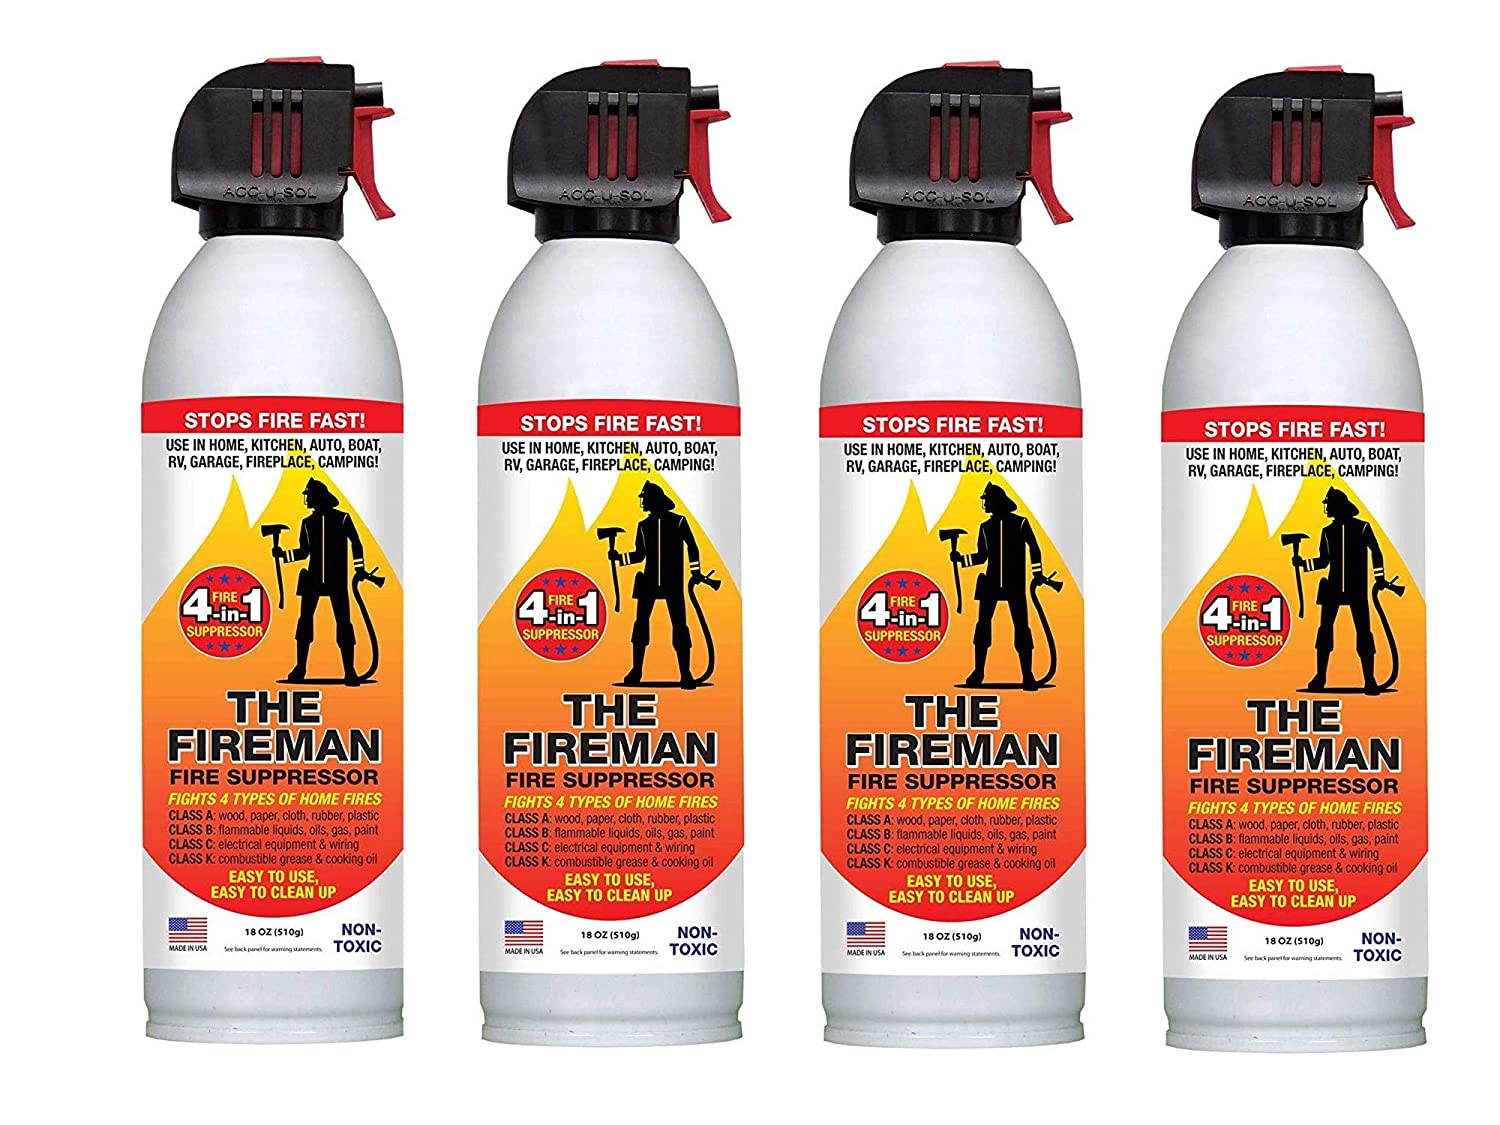 THE FIREMAN Multi-Purpose Fire Extinguishing Suppressant Spray UL APPROVED wetting agent for Home Safety – Fights ALL 4 Common Fires Wood, Gasoline, Electrical and Grease Class A,B,C K 18 oz